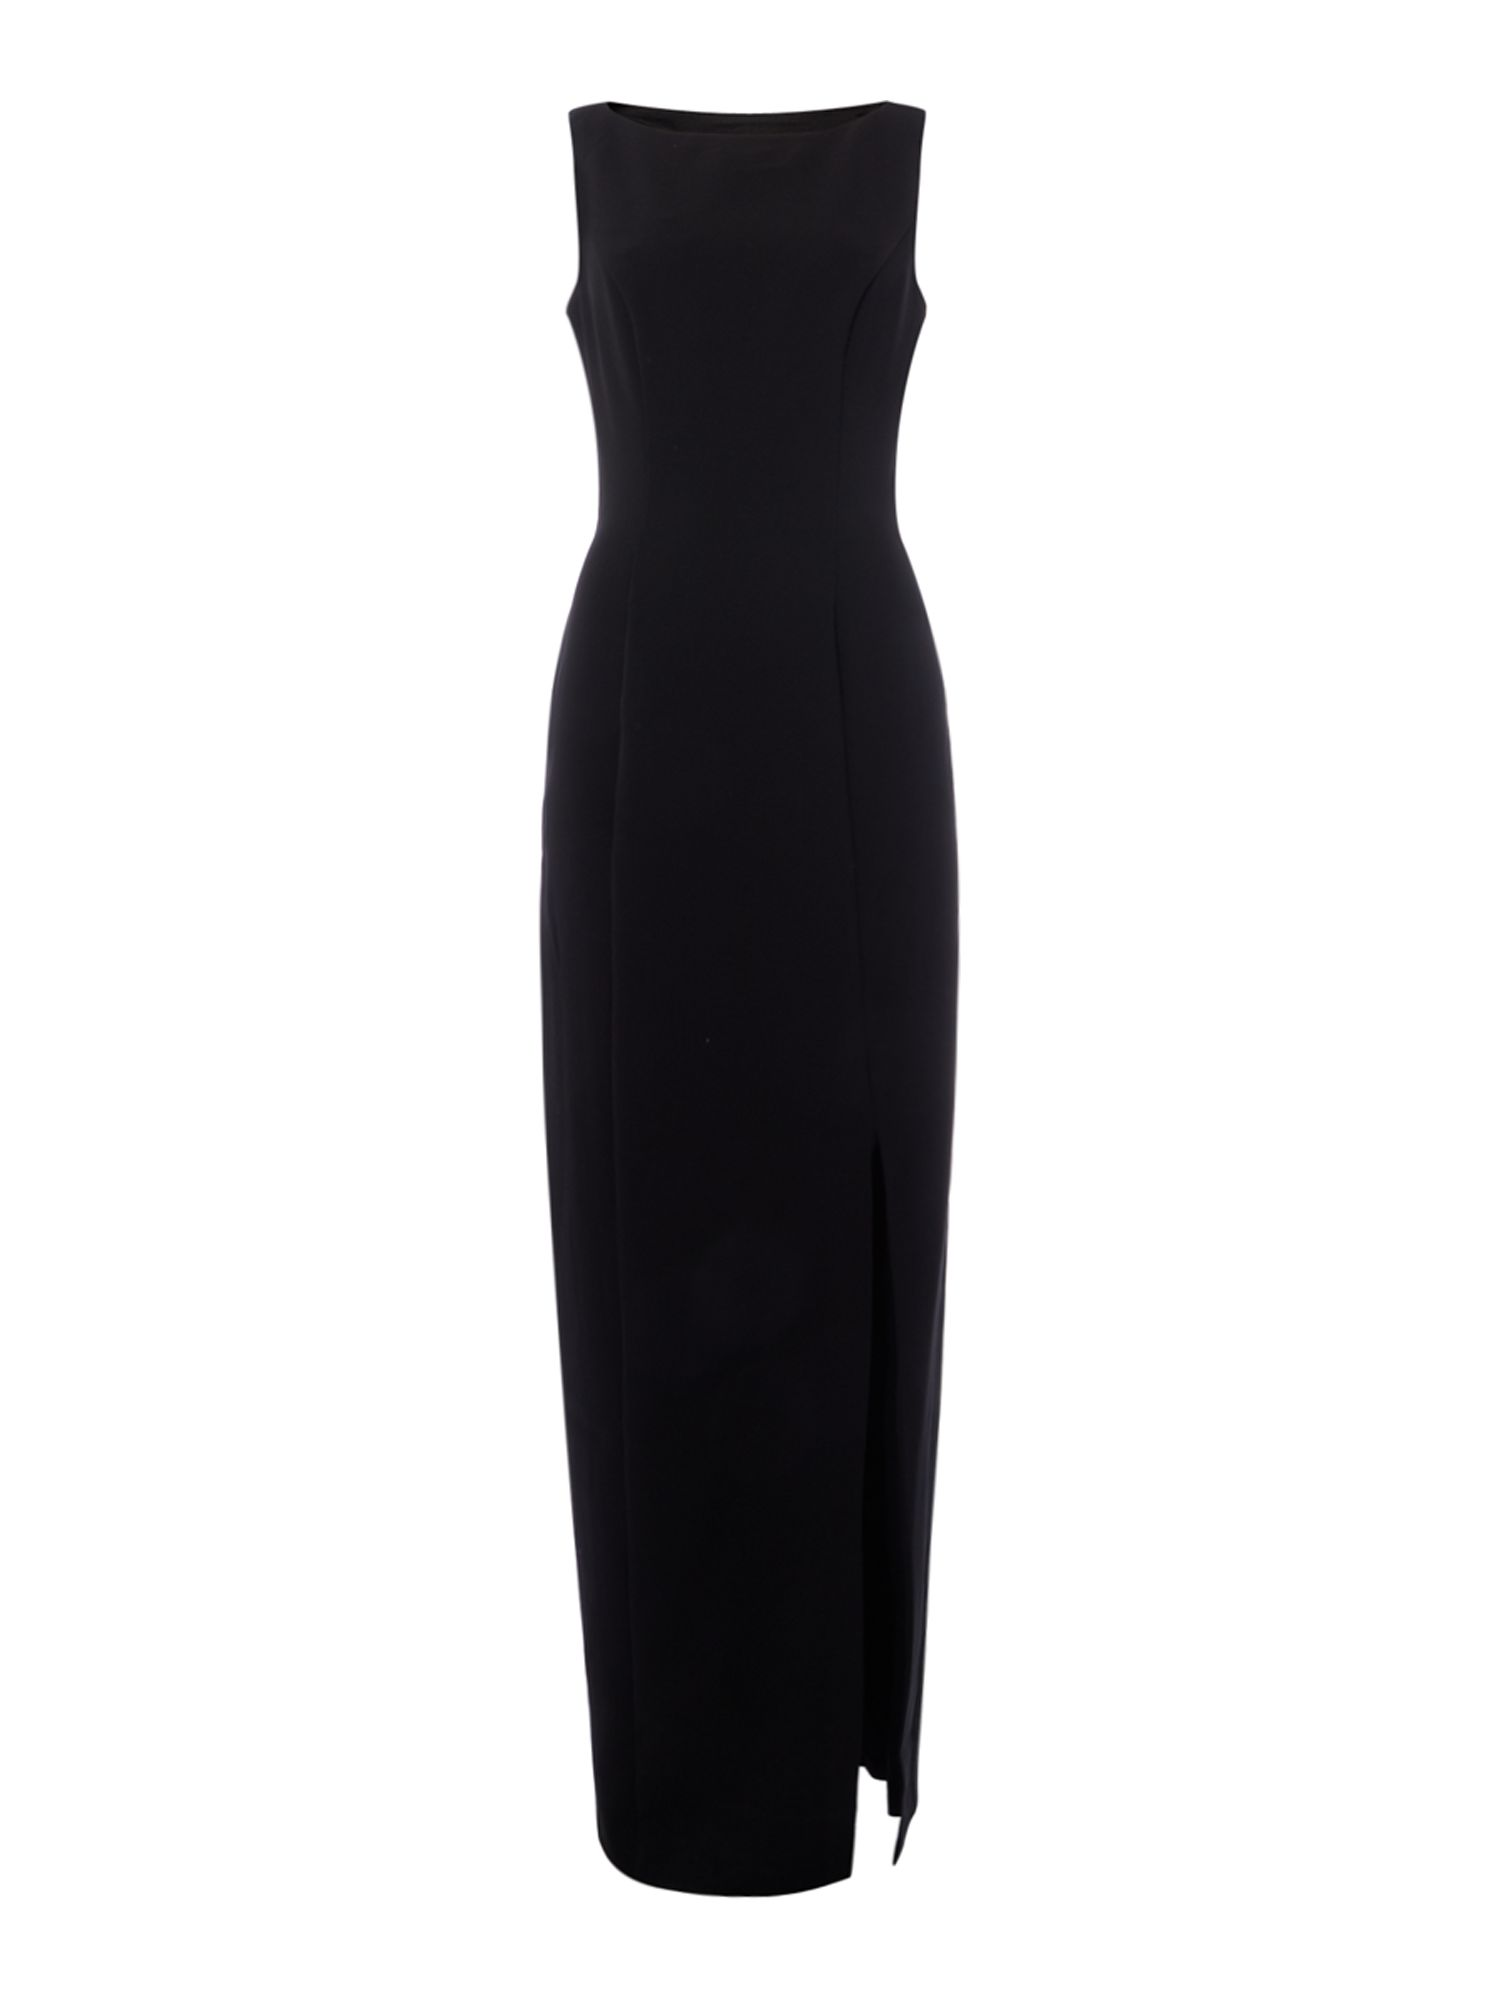 JS Collections Black gown dress with cut out back, Black